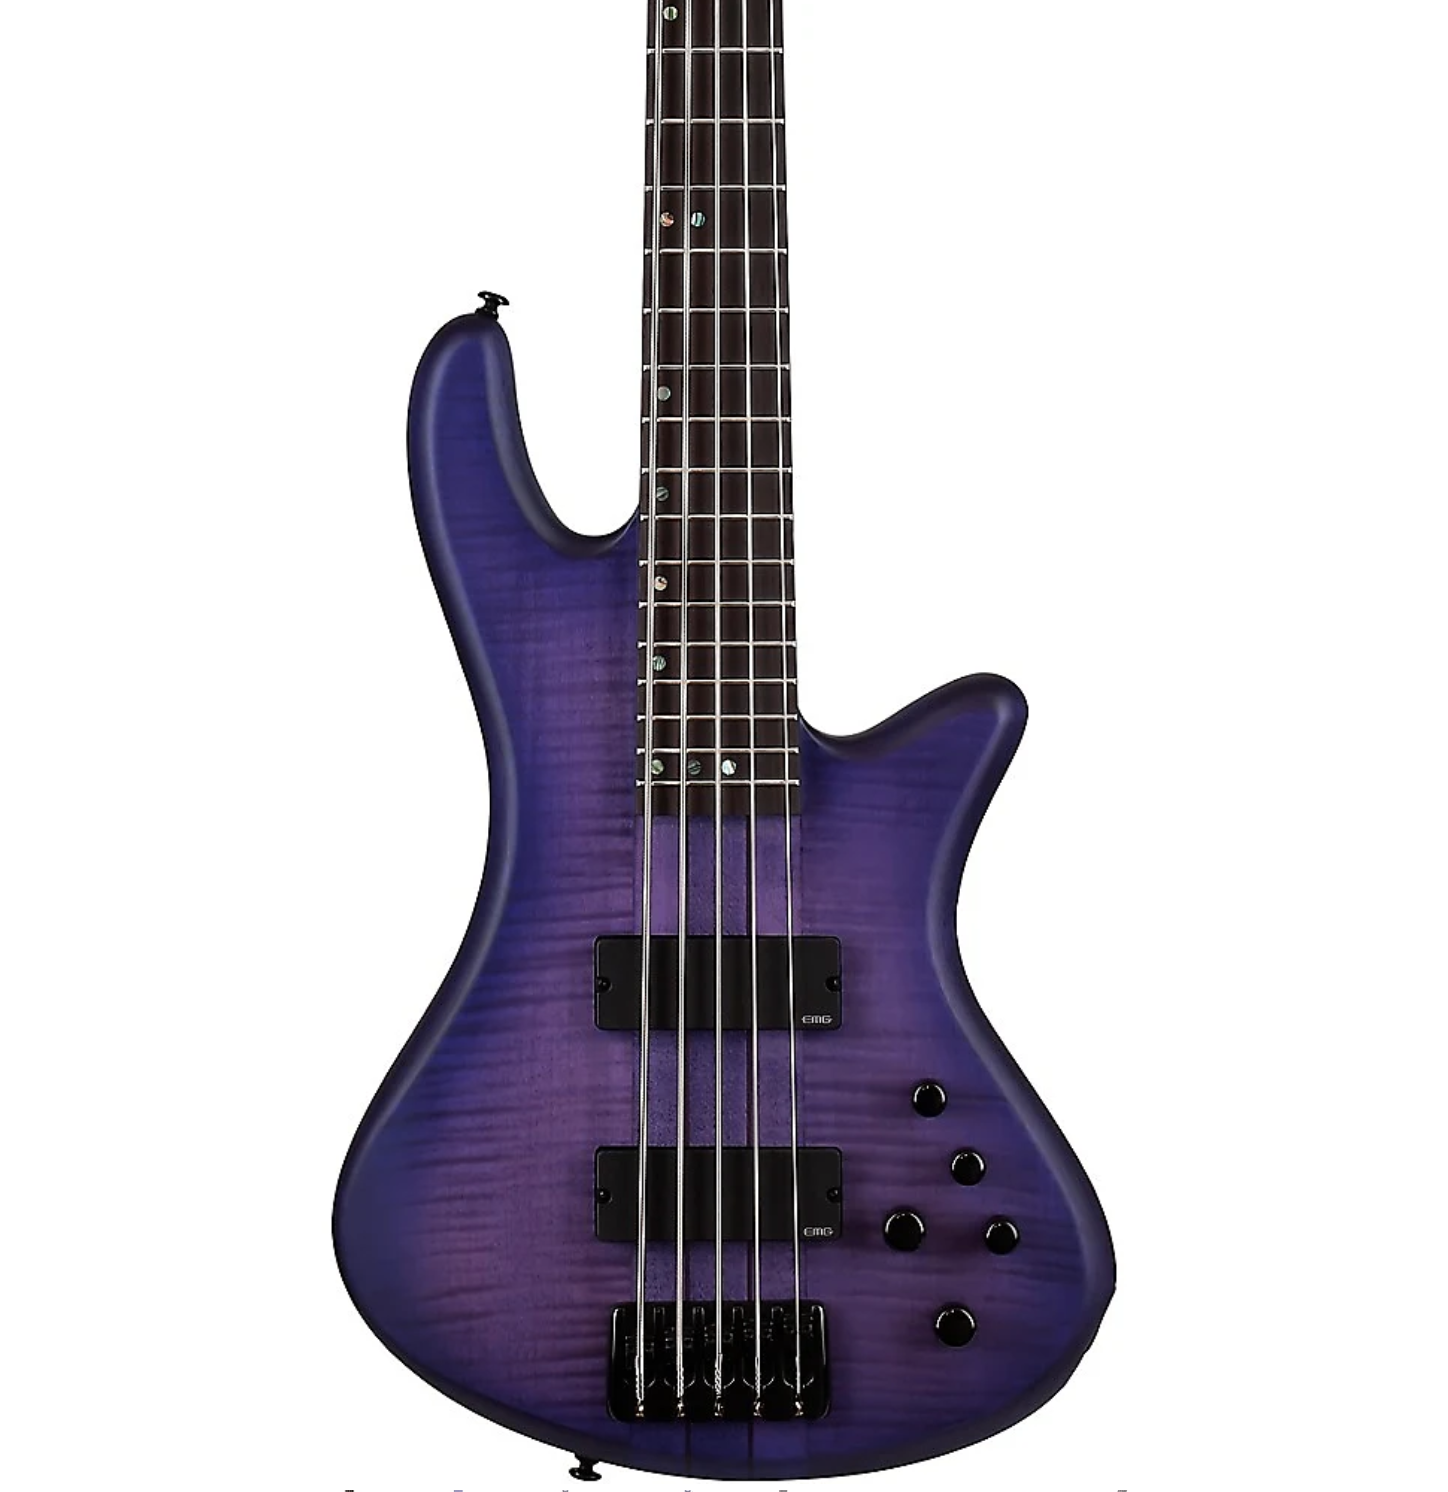 Bajo Eléctrico Schecter Guitar Research Limited-Edition Stiletto Studio-4 1